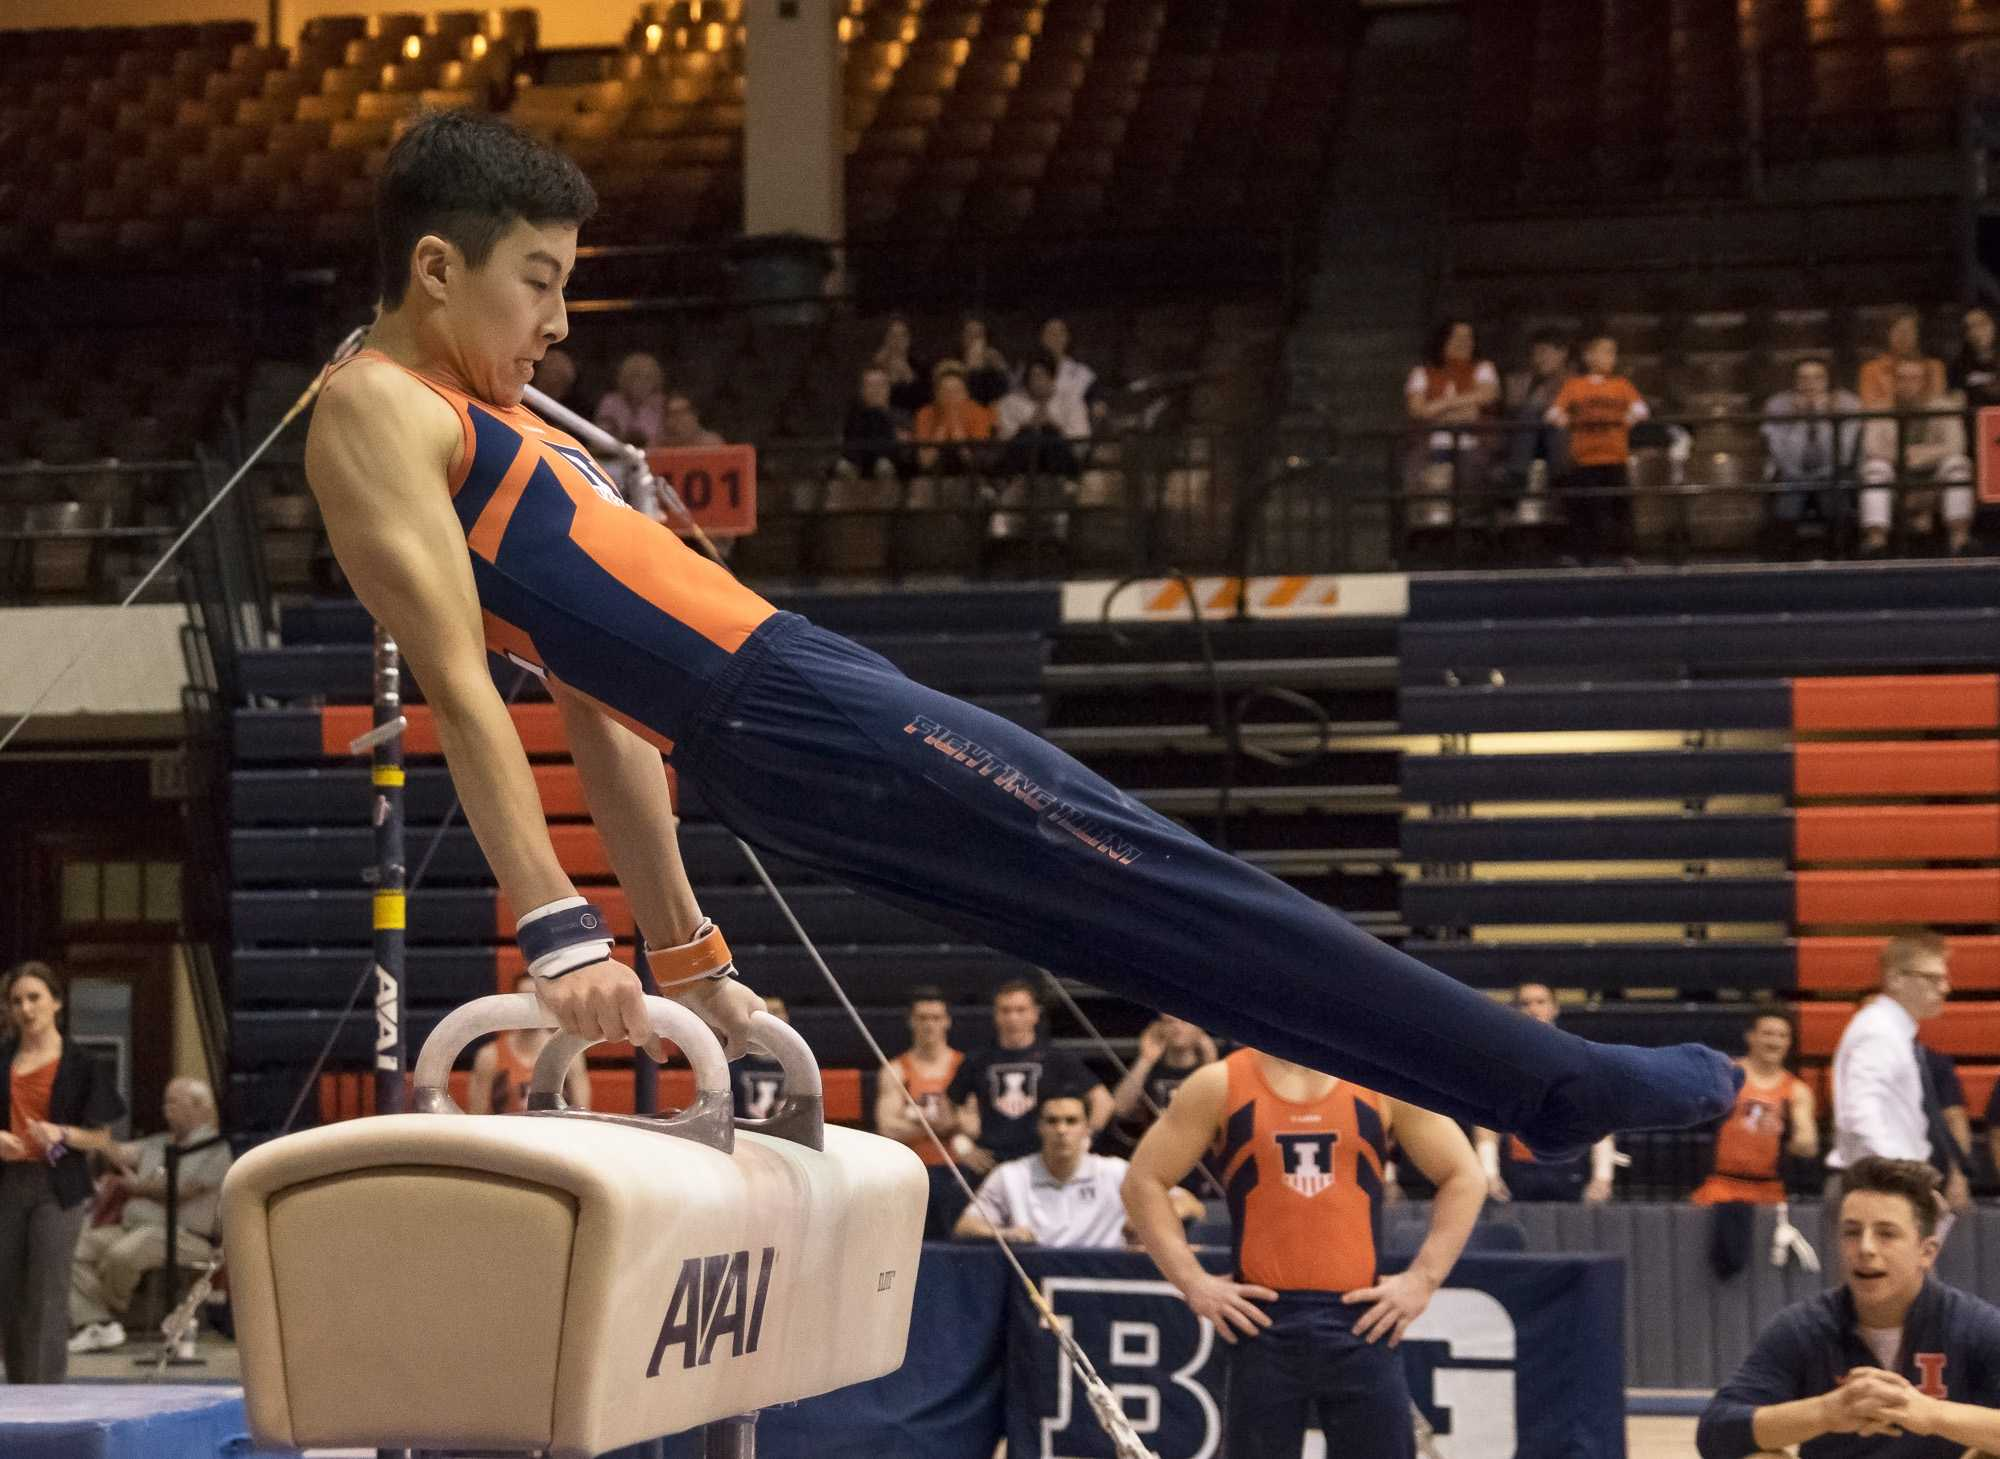 Illinois' Brandon Ngai performs his routine on the pommel horse at the meet against Michigan on March 12, 2016.